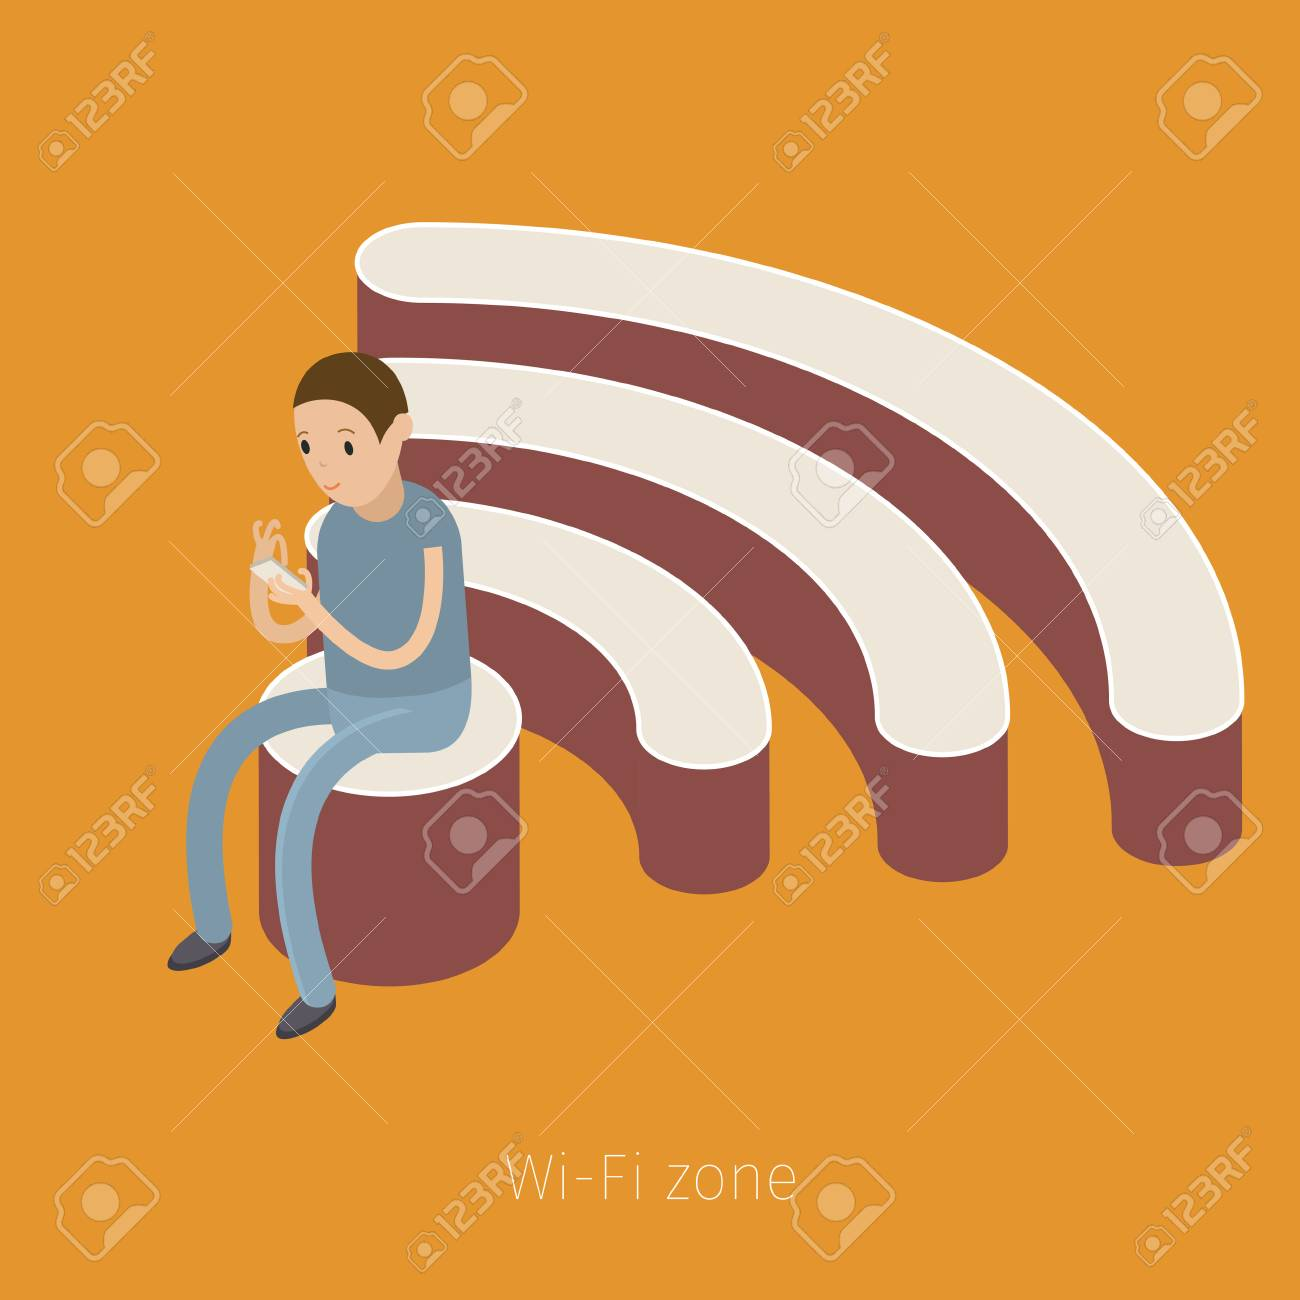 Concept Of Wifi Zone Man Sitting On The Symbol Of Wifi Flat